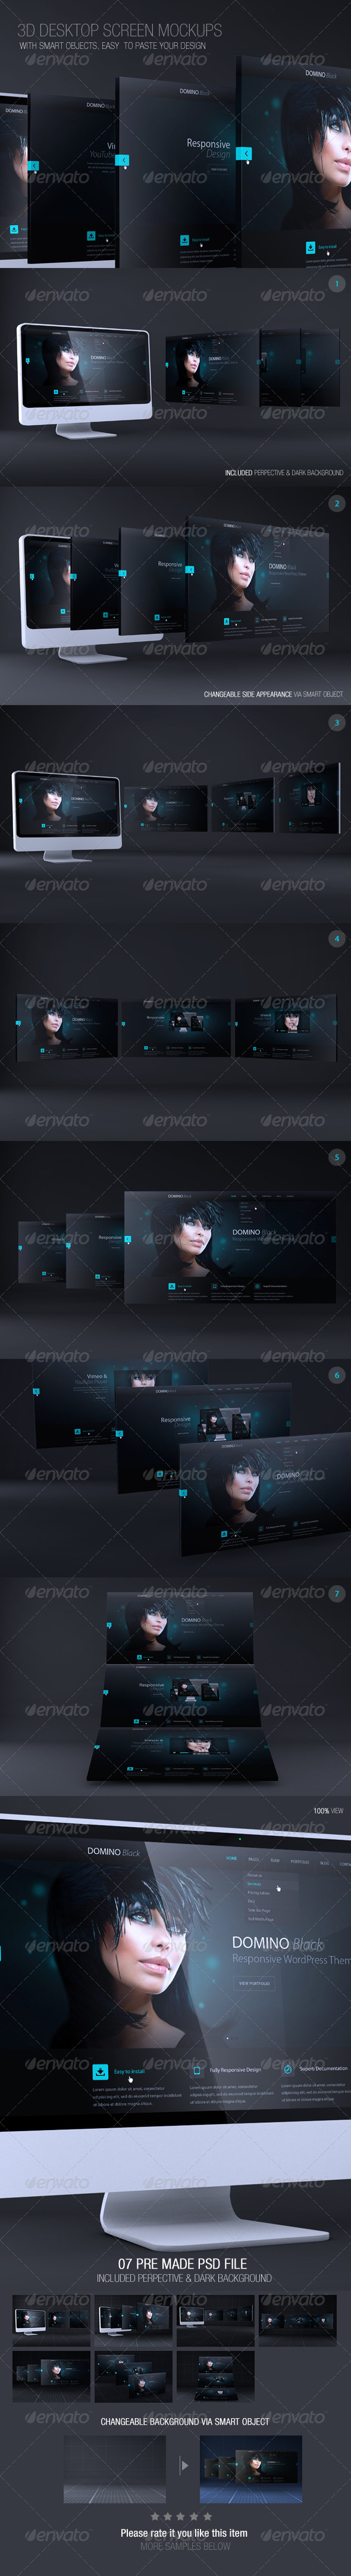 GraphicRiver 3D Desktop Screen Mockups 7092445